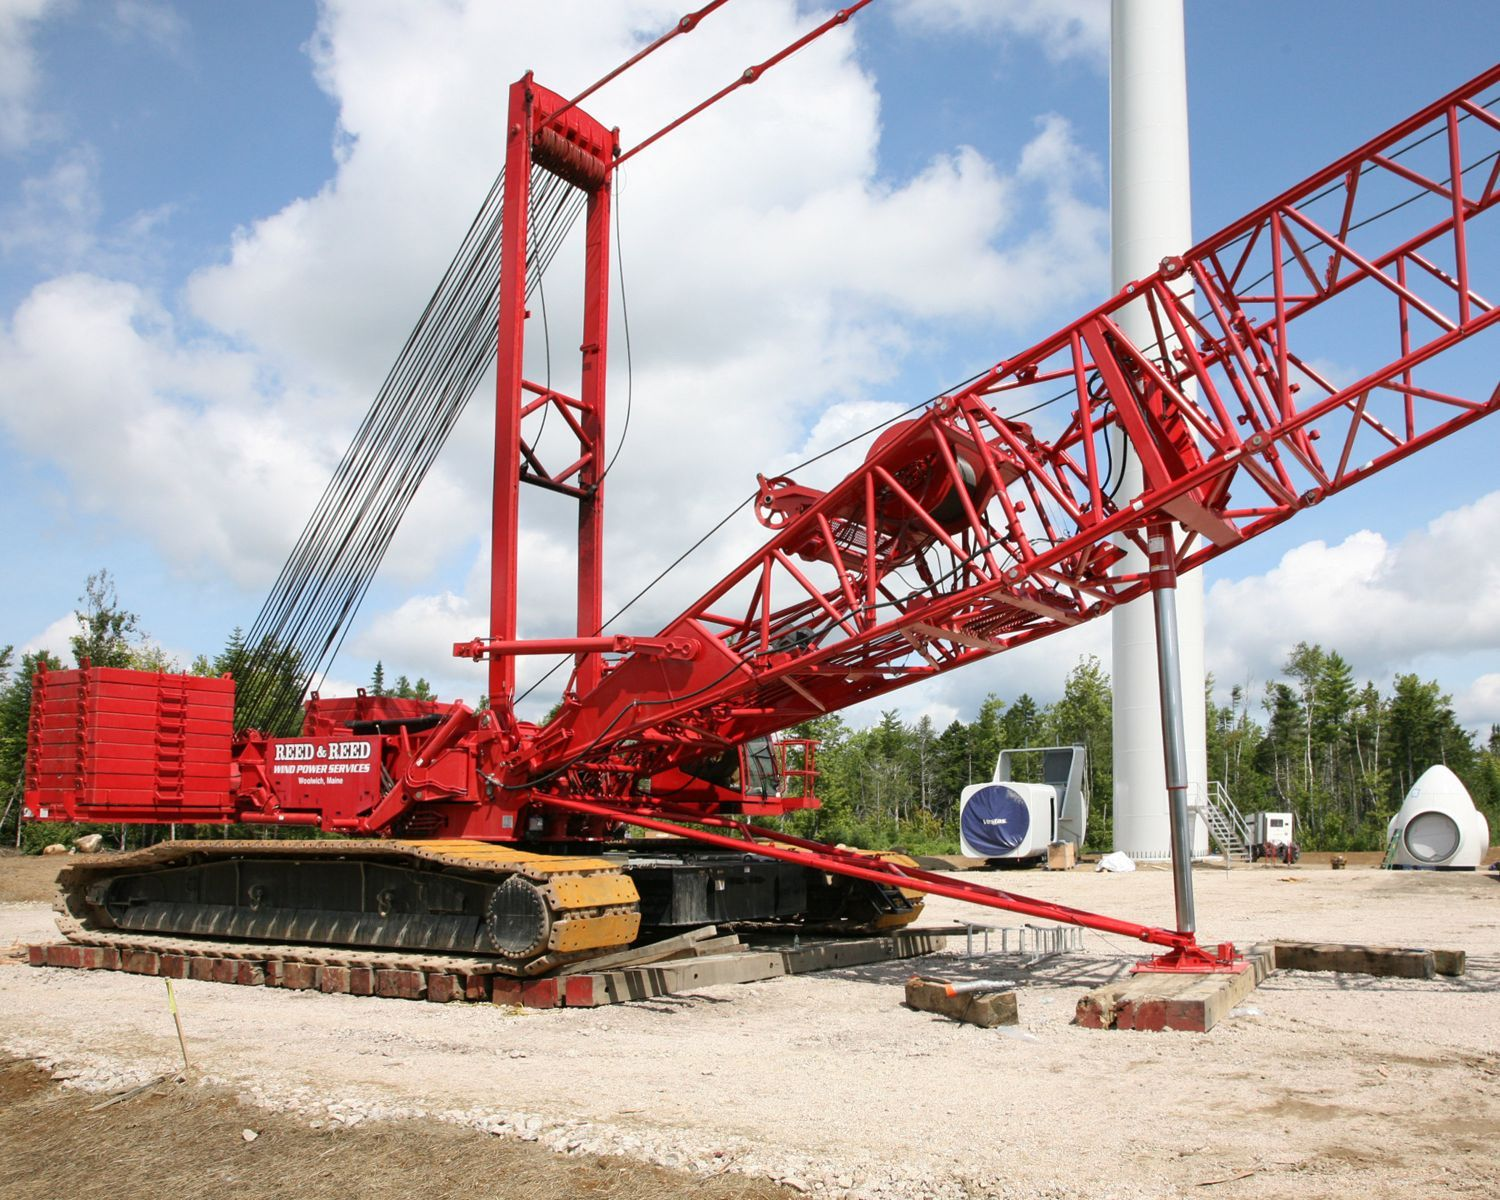 Manitowoc 16000 Crawler Crane Fitted With The Wind Attachment And Boom Raising System The Innovative Attachment Crawler Crane Construction Equipment Manitowoc